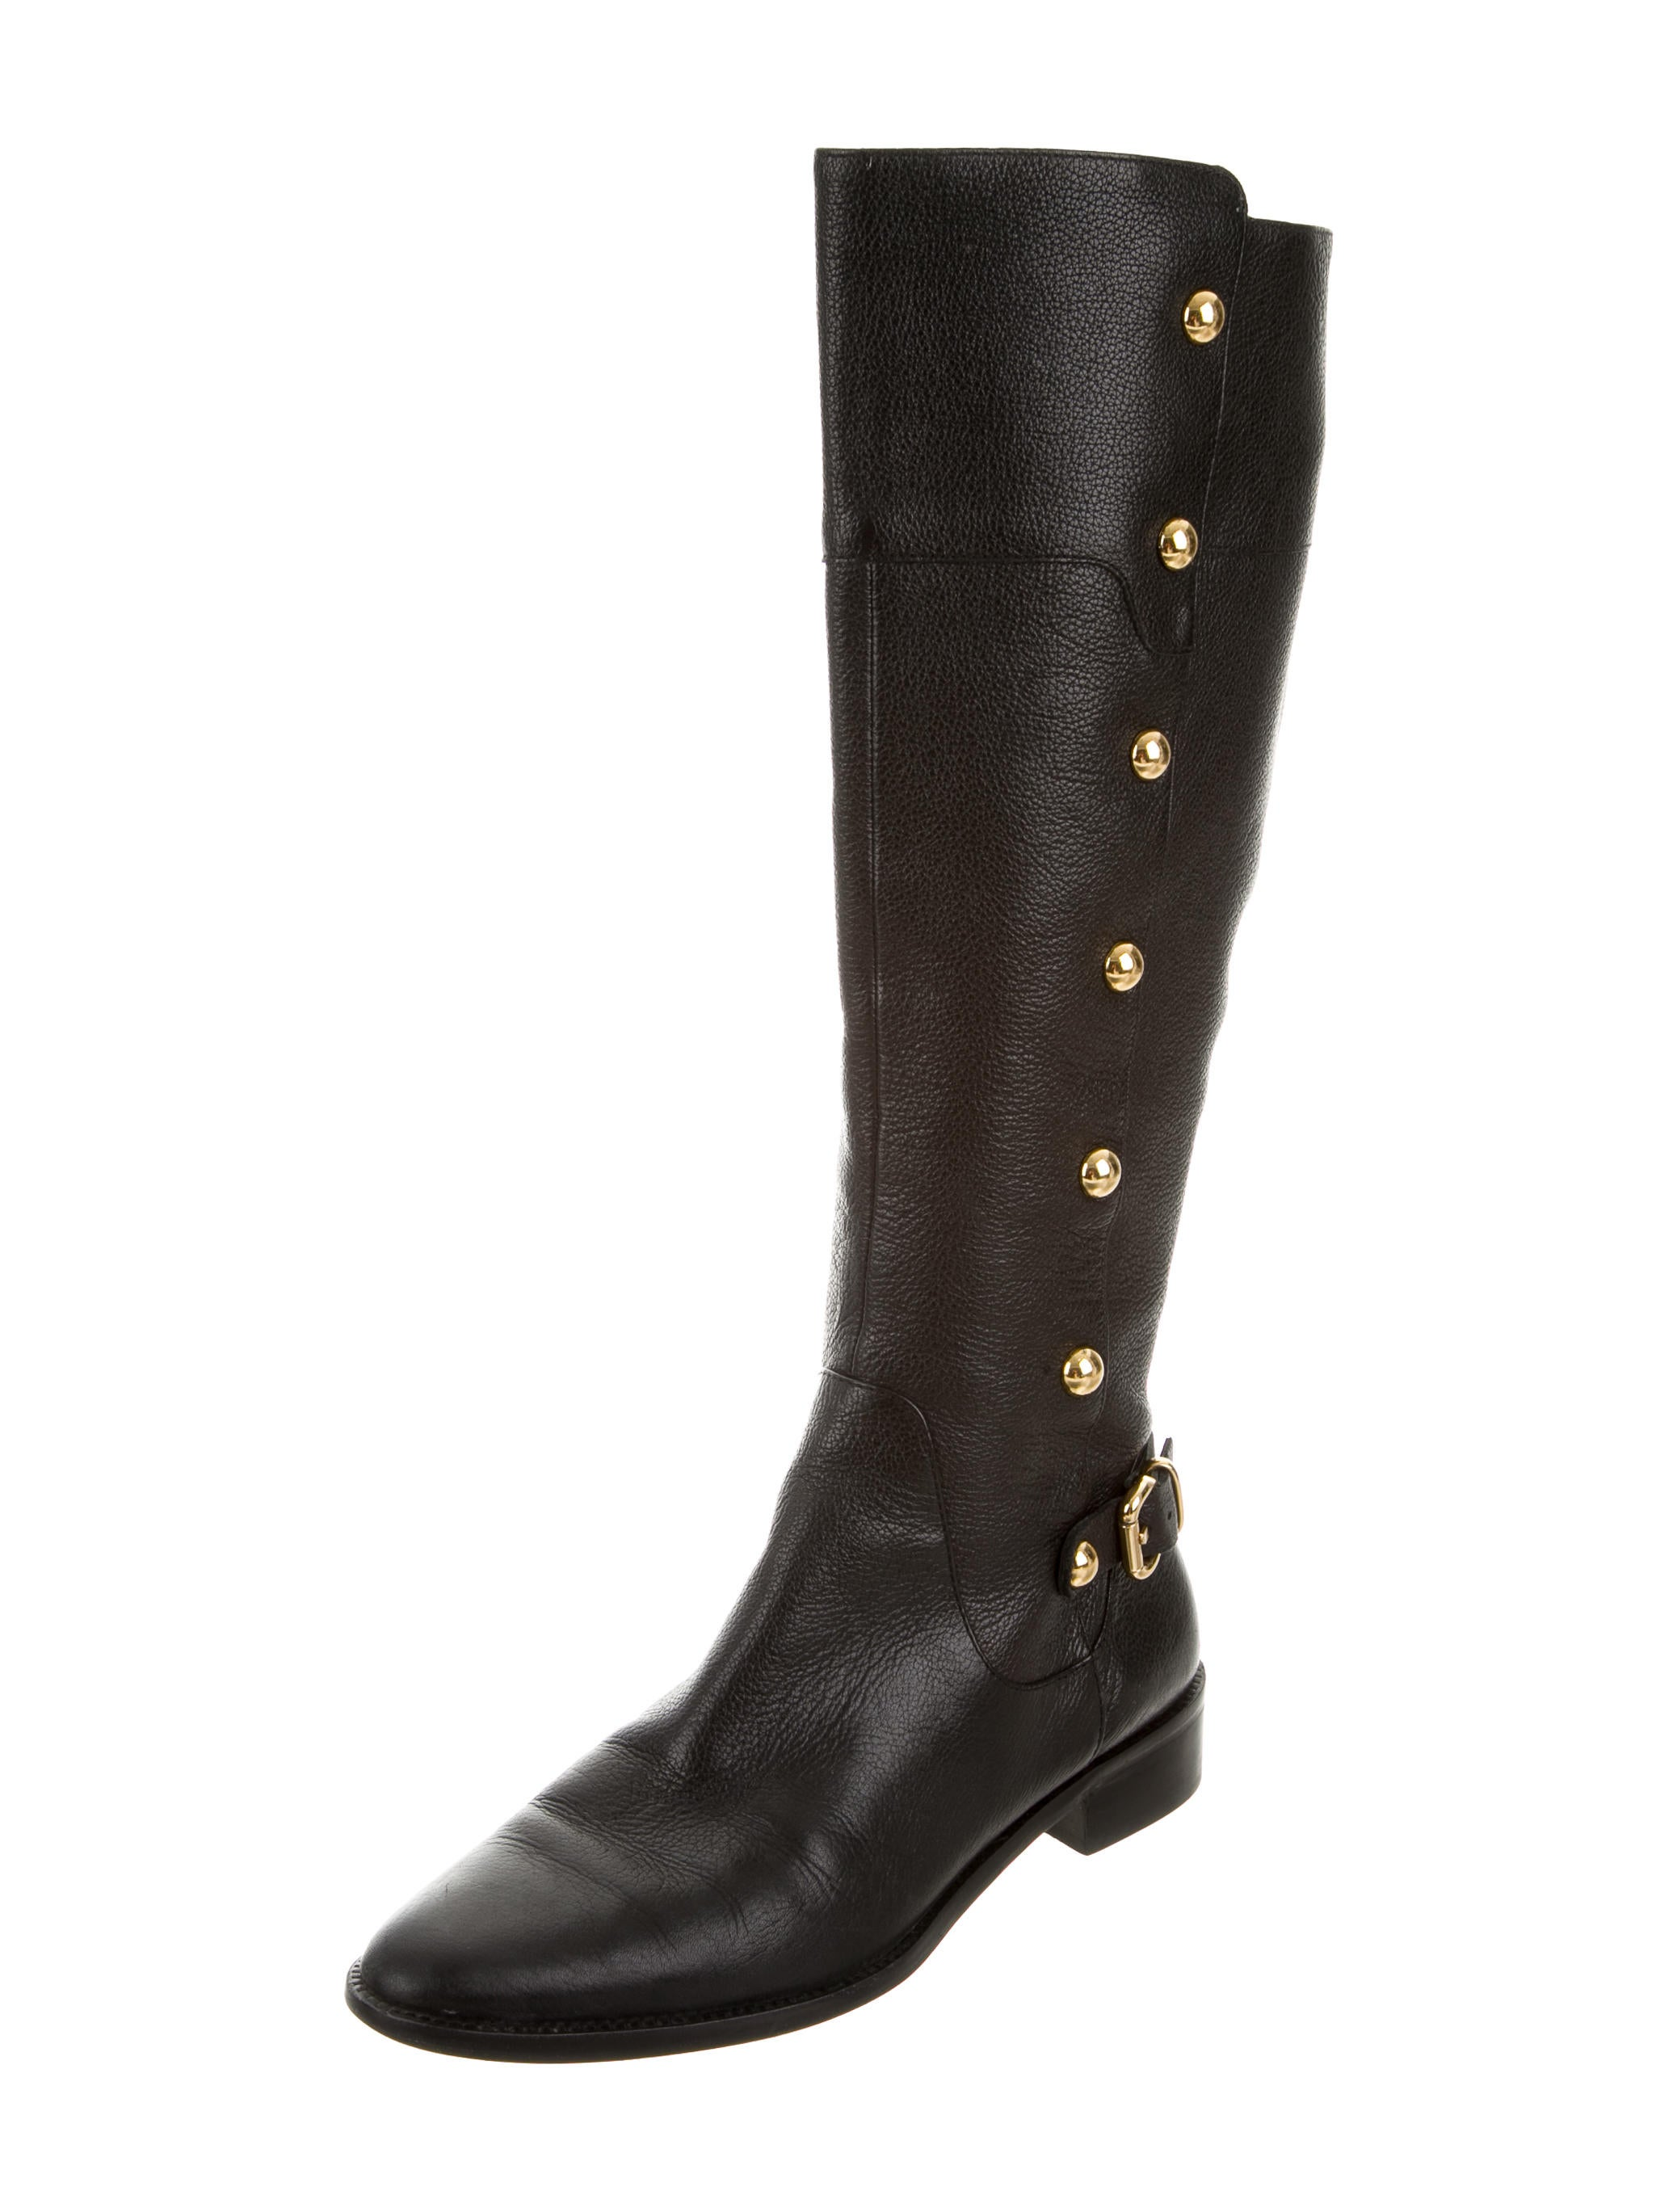 kors by michael kors studded leather boots shoes